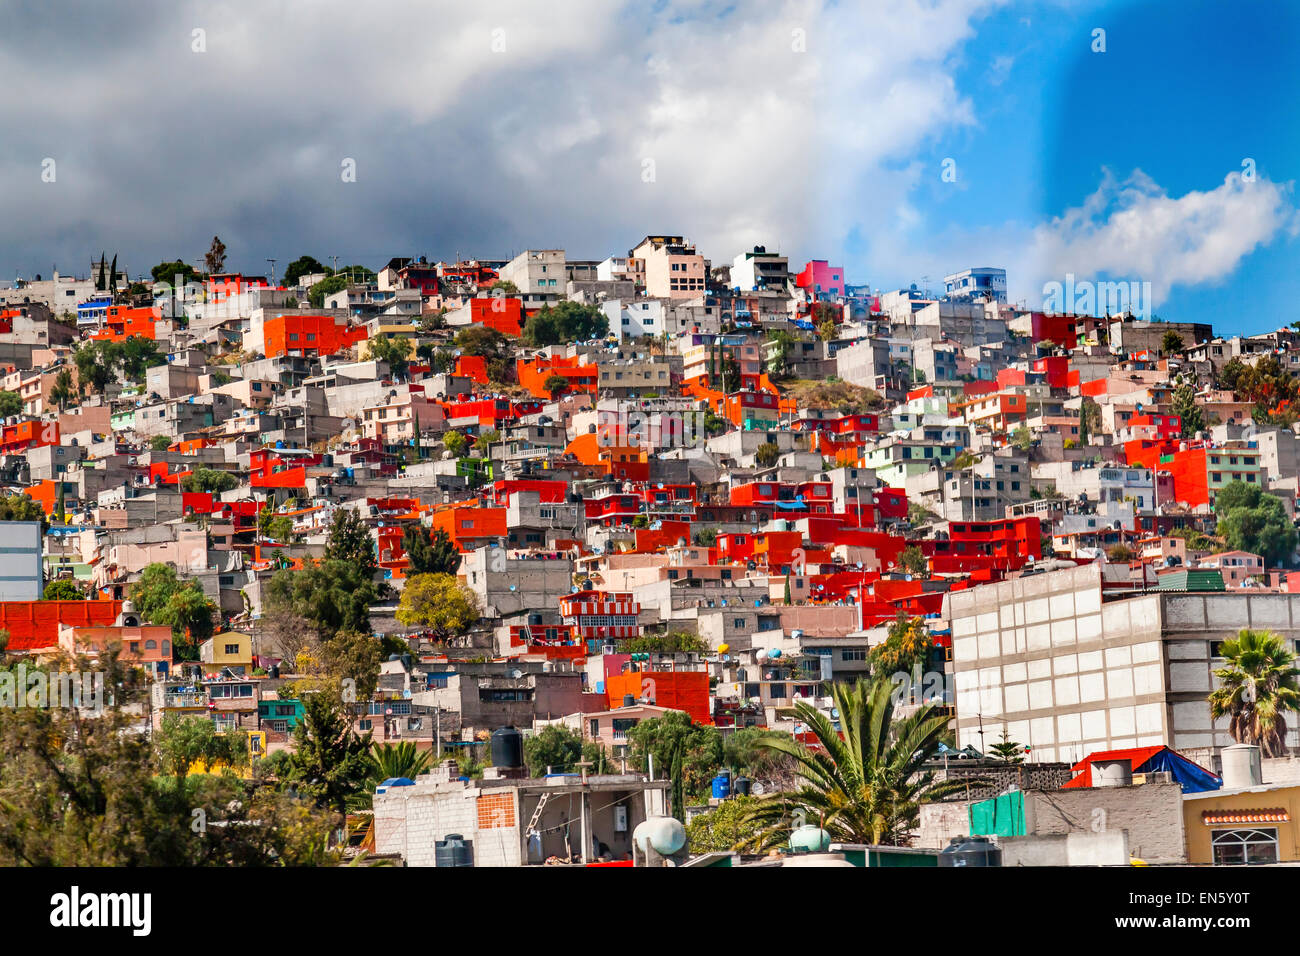 Colorful Orange Houses Suburbs, Outskirts Outside Rainstorm Mexico City Mexico  Colorful Orange Houses makes pattern. - Stock Image